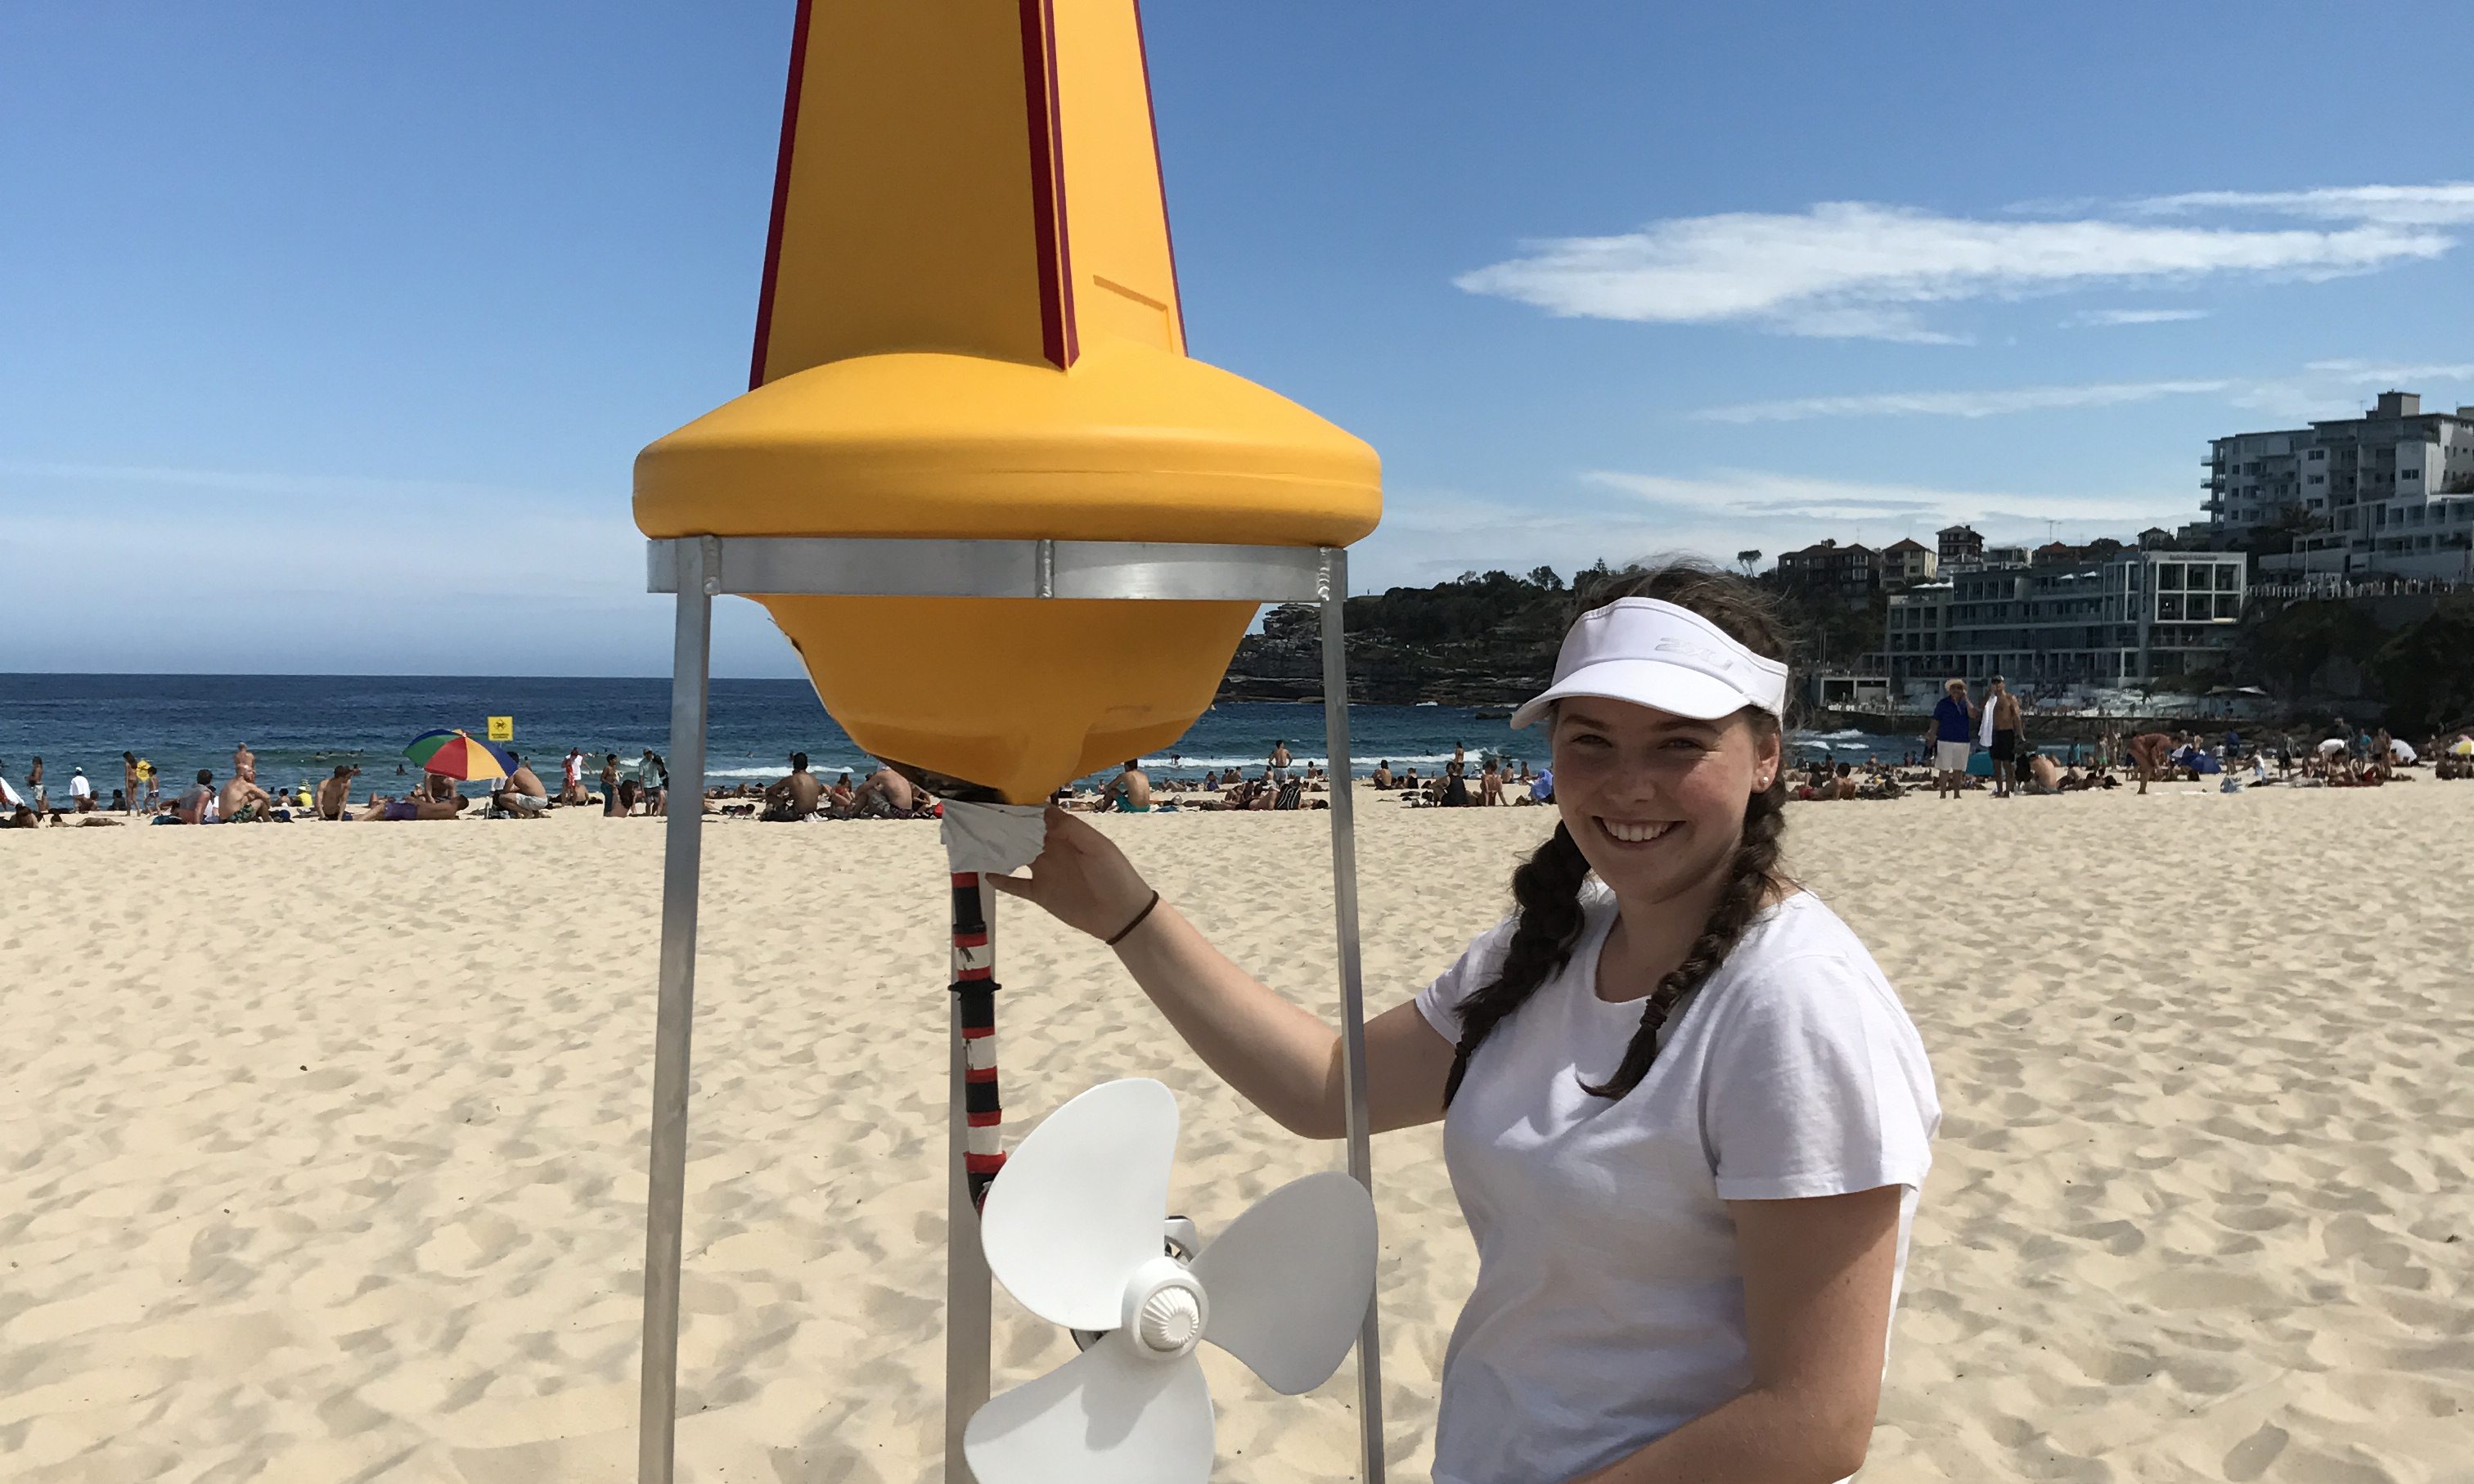 2017 BHP Billiton Science and Engineering Awards finalist Maddison King at the beach with her invention